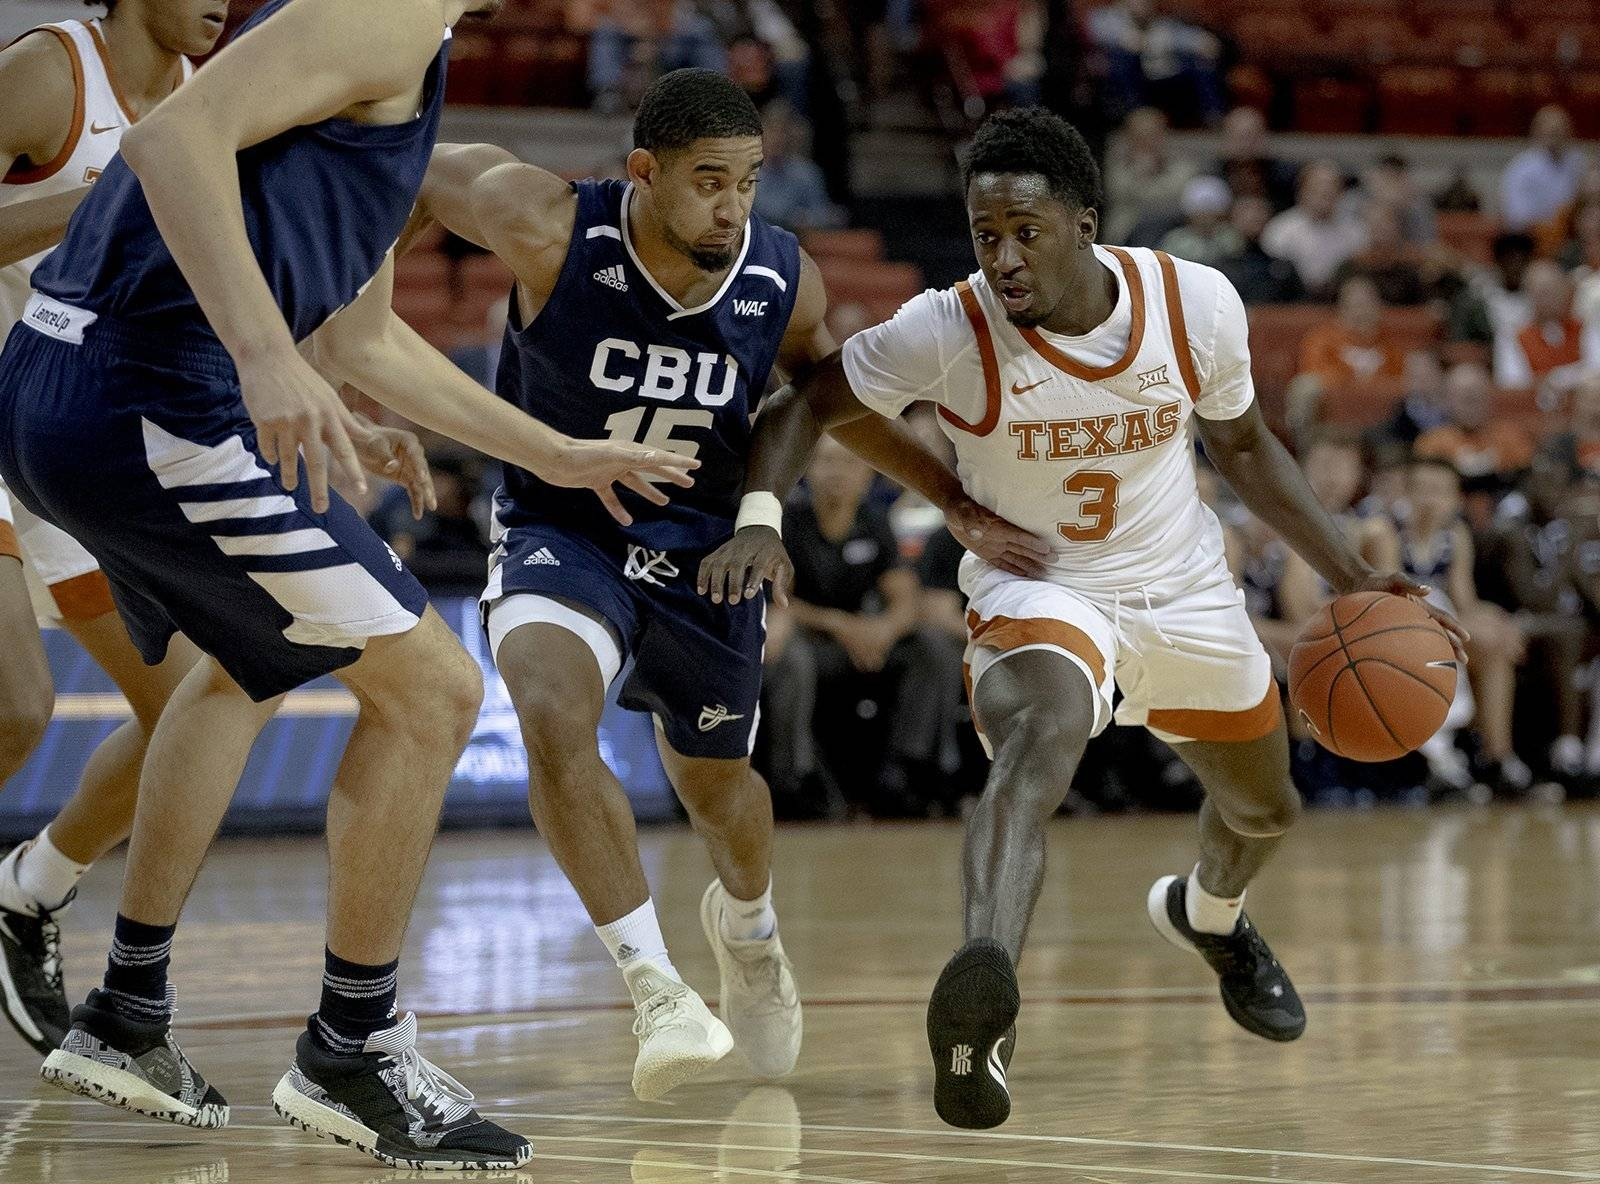 Men's preview: Texas vs. Central Michigan